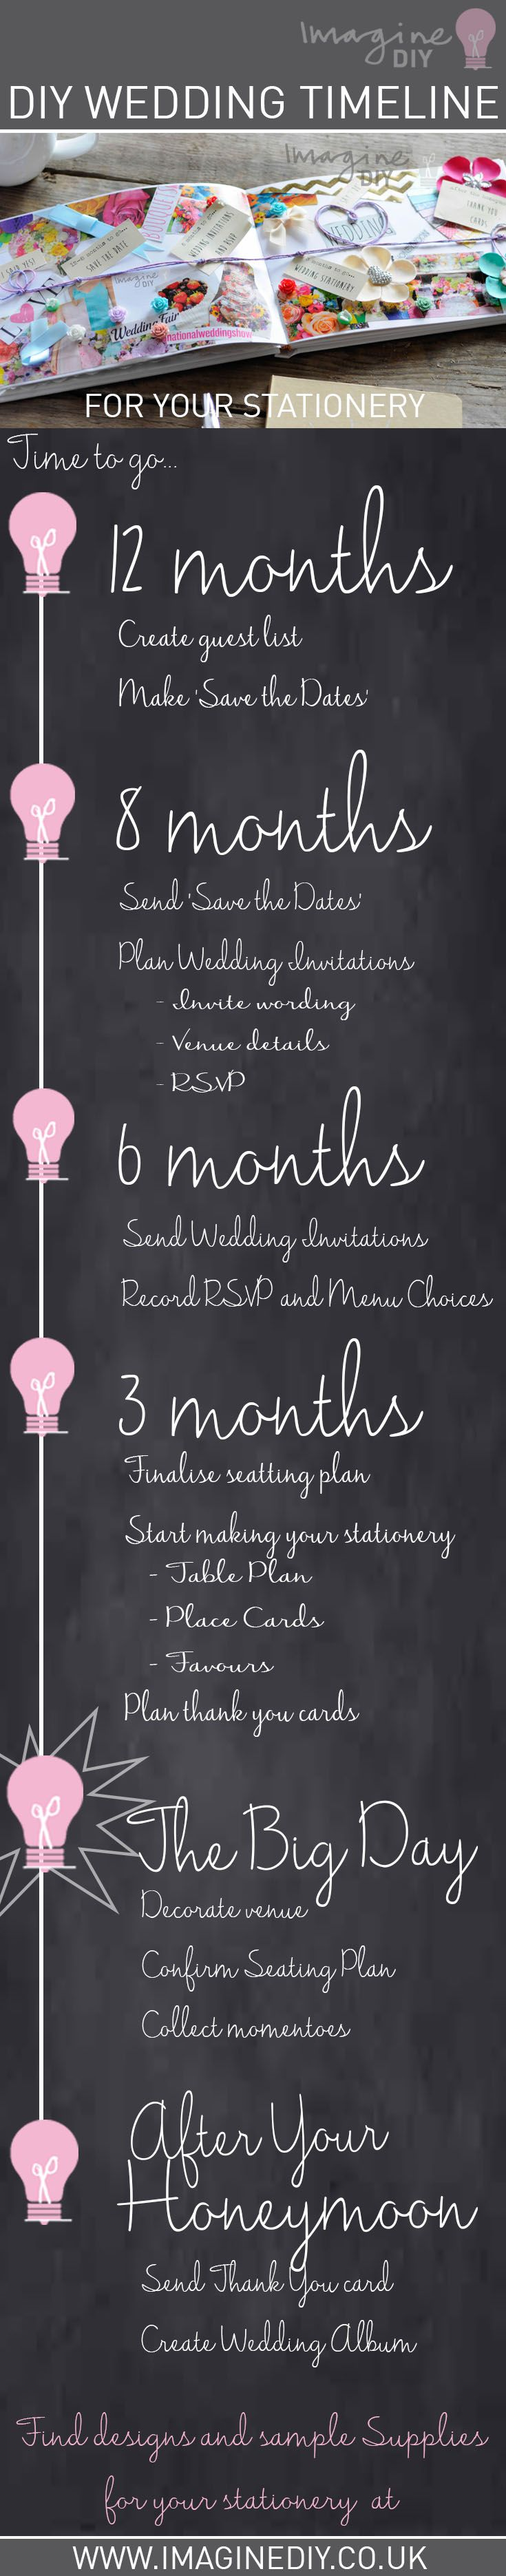 Best 25 Wedding Planners Ideas On Pinterest Planner Checklist To Do List And Timeline